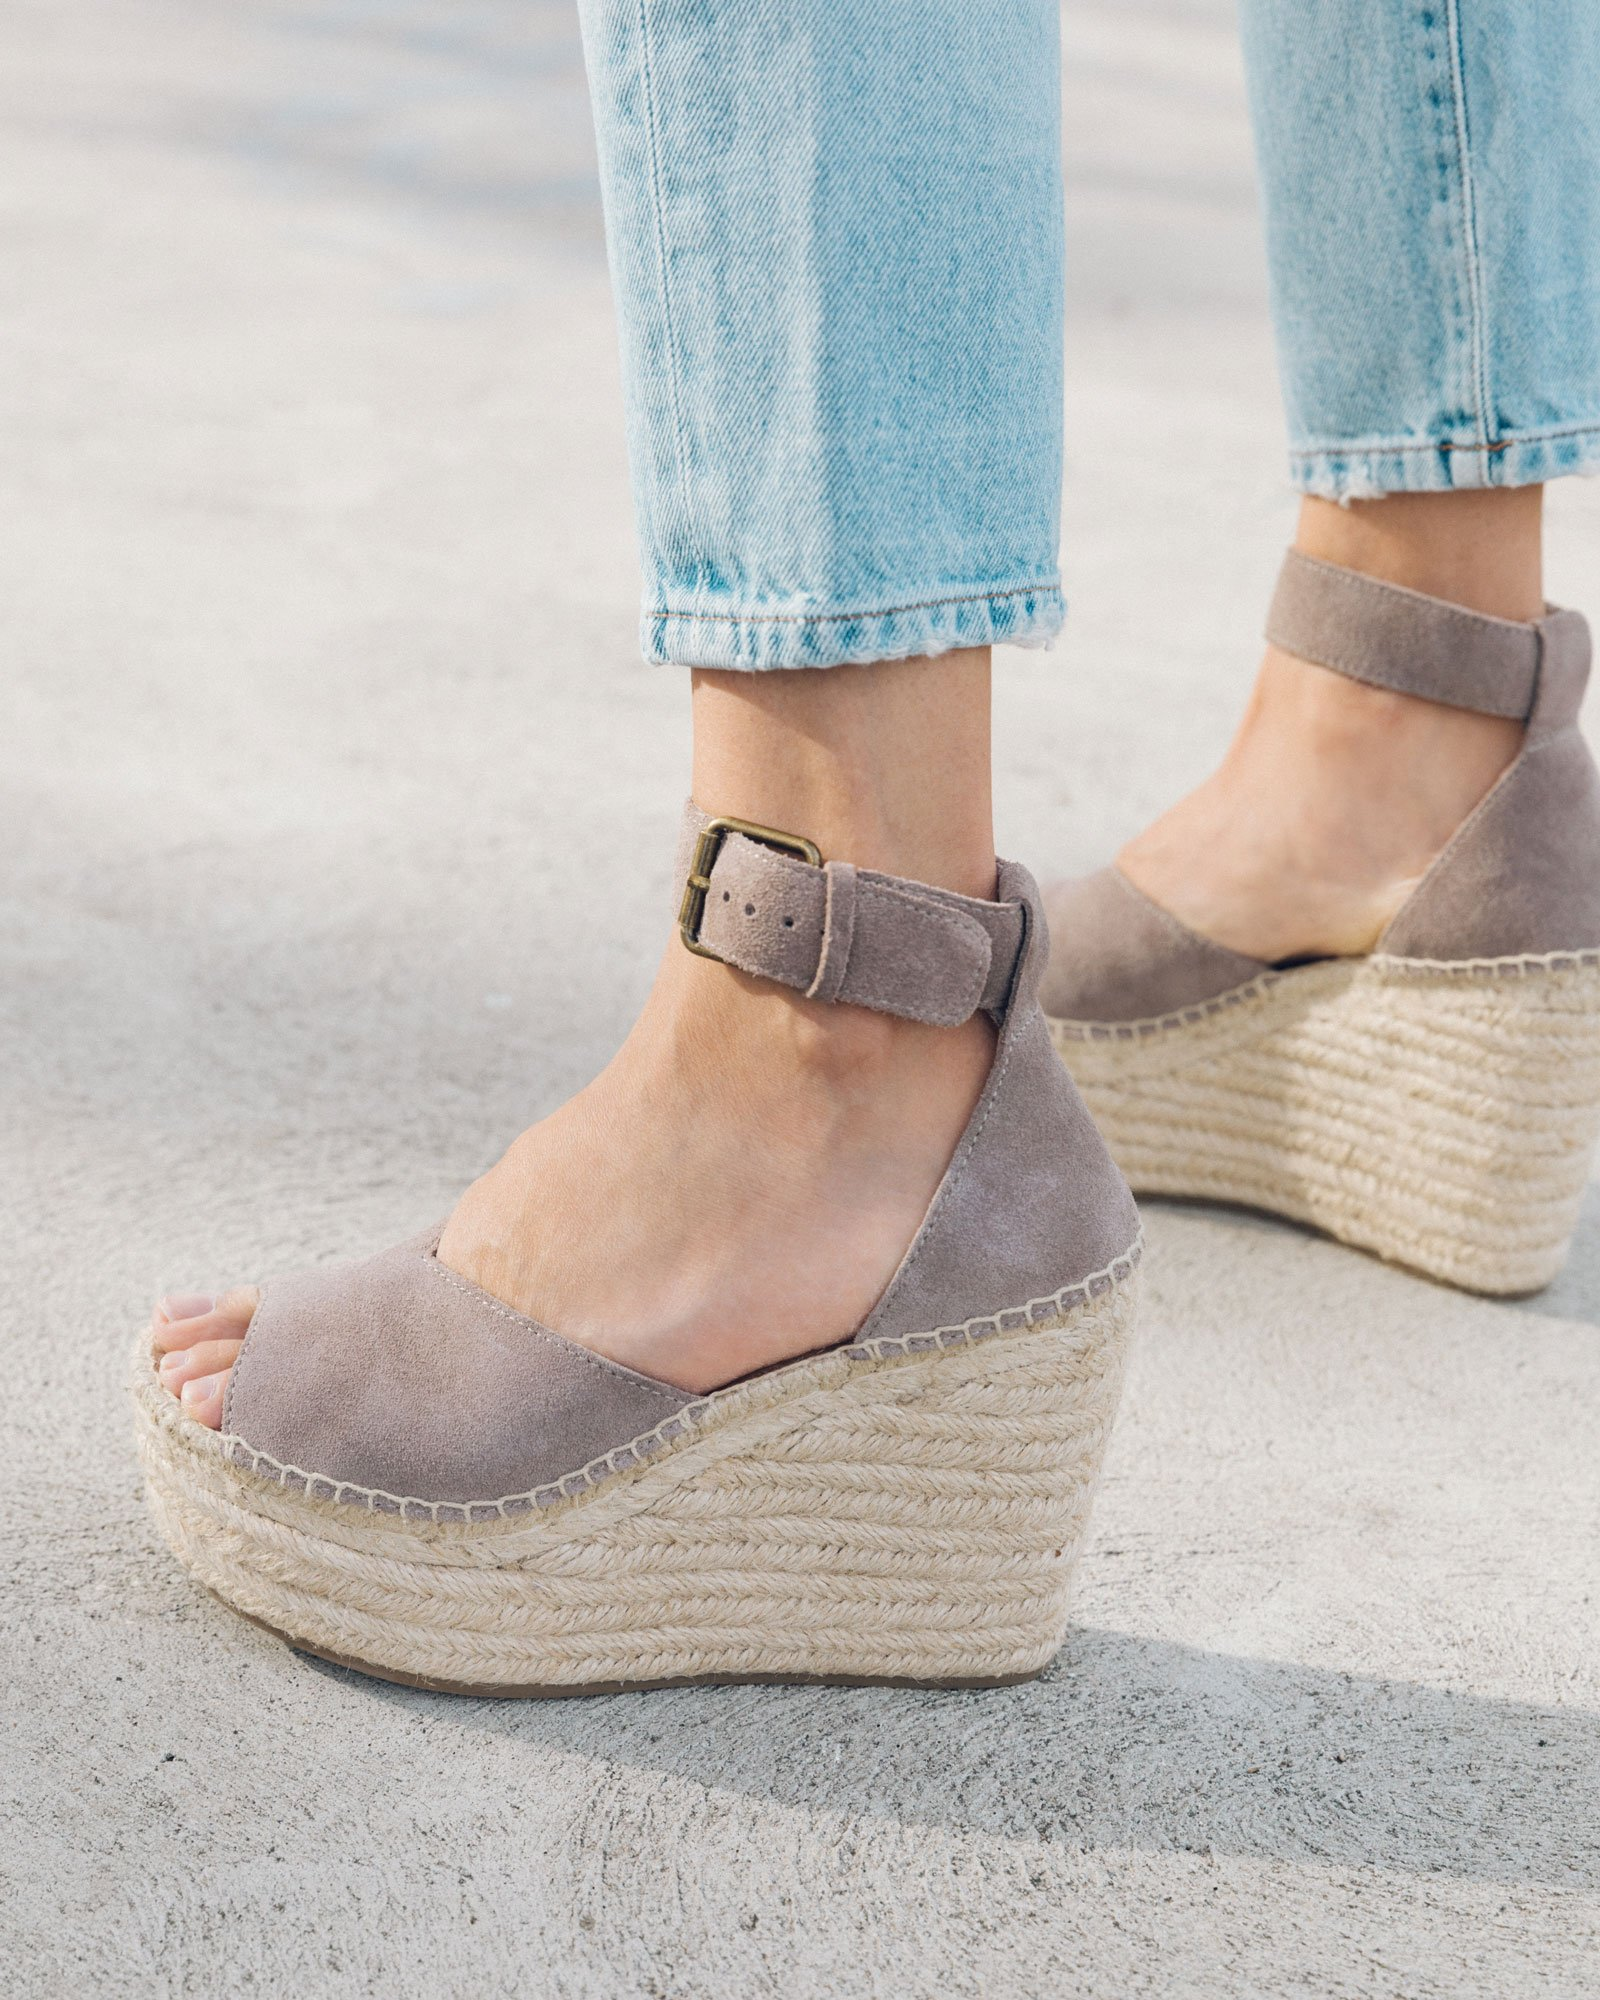 Light grey suede espadrille wedges from Soludos